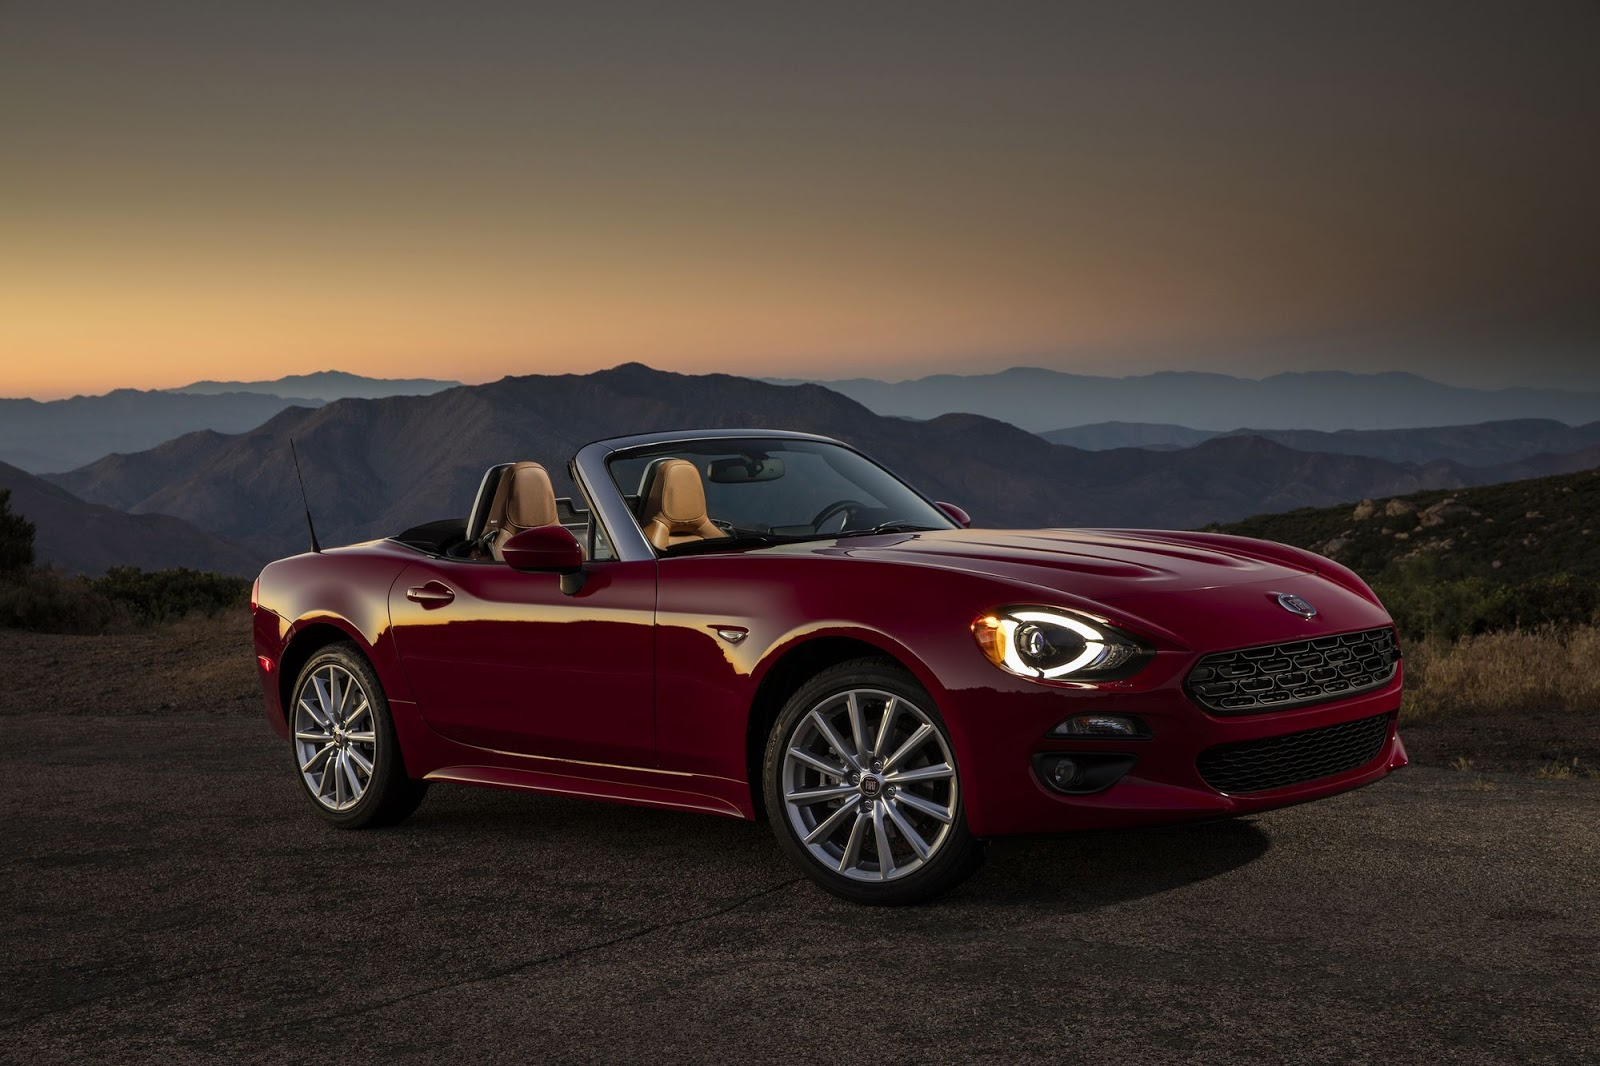 2018 fiat 124 spider receives new colors and trims carscoops. Black Bedroom Furniture Sets. Home Design Ideas